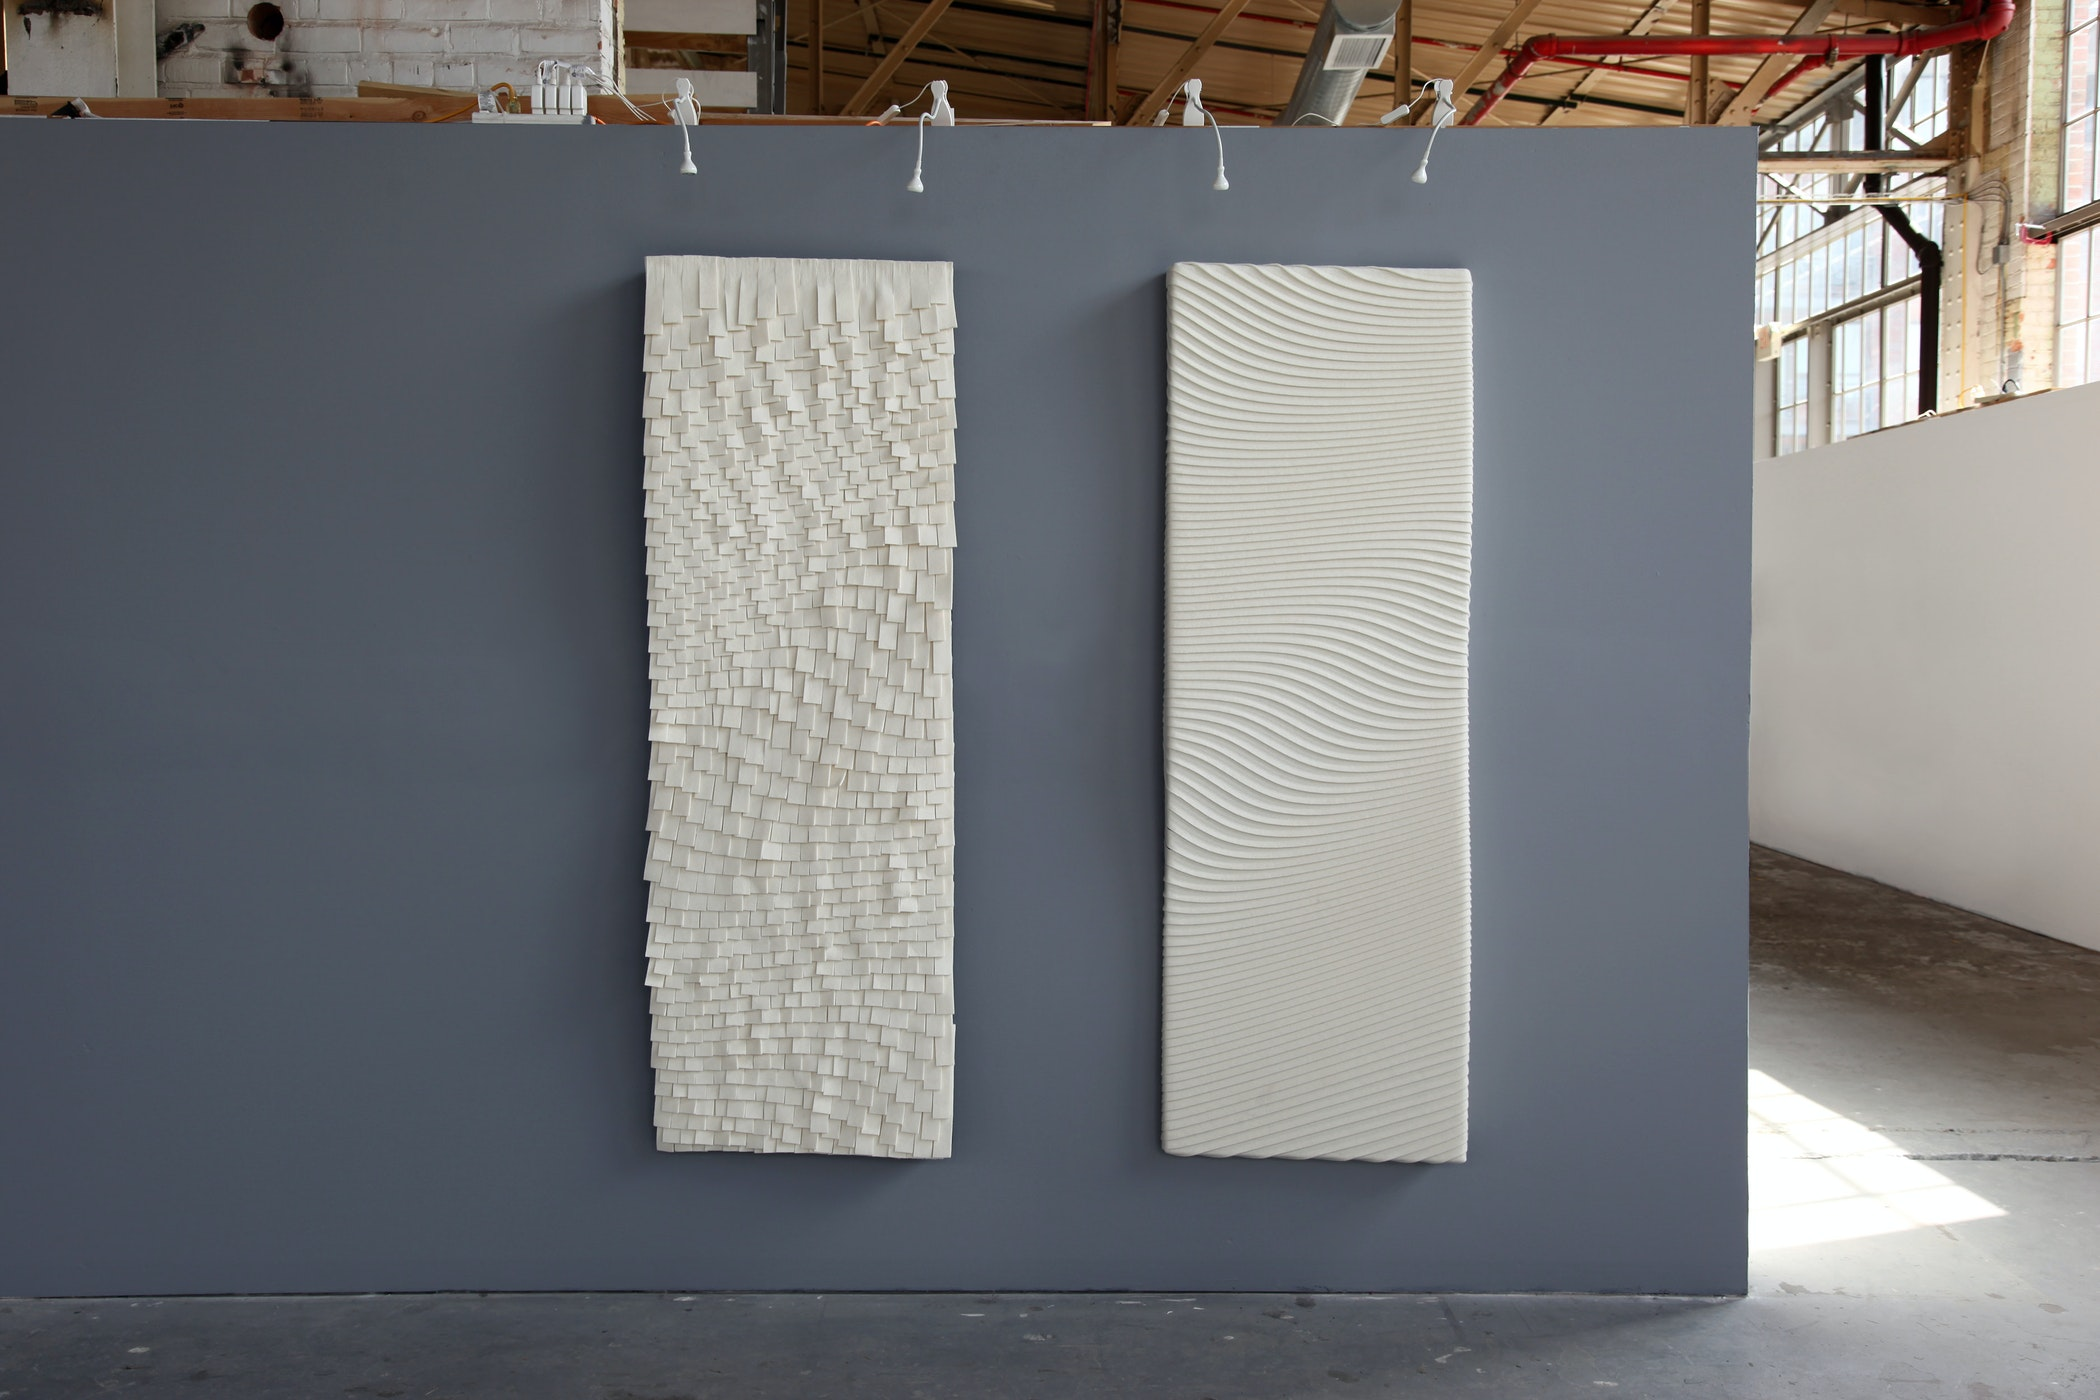 acoustic panels with shingle and shiplap techniques